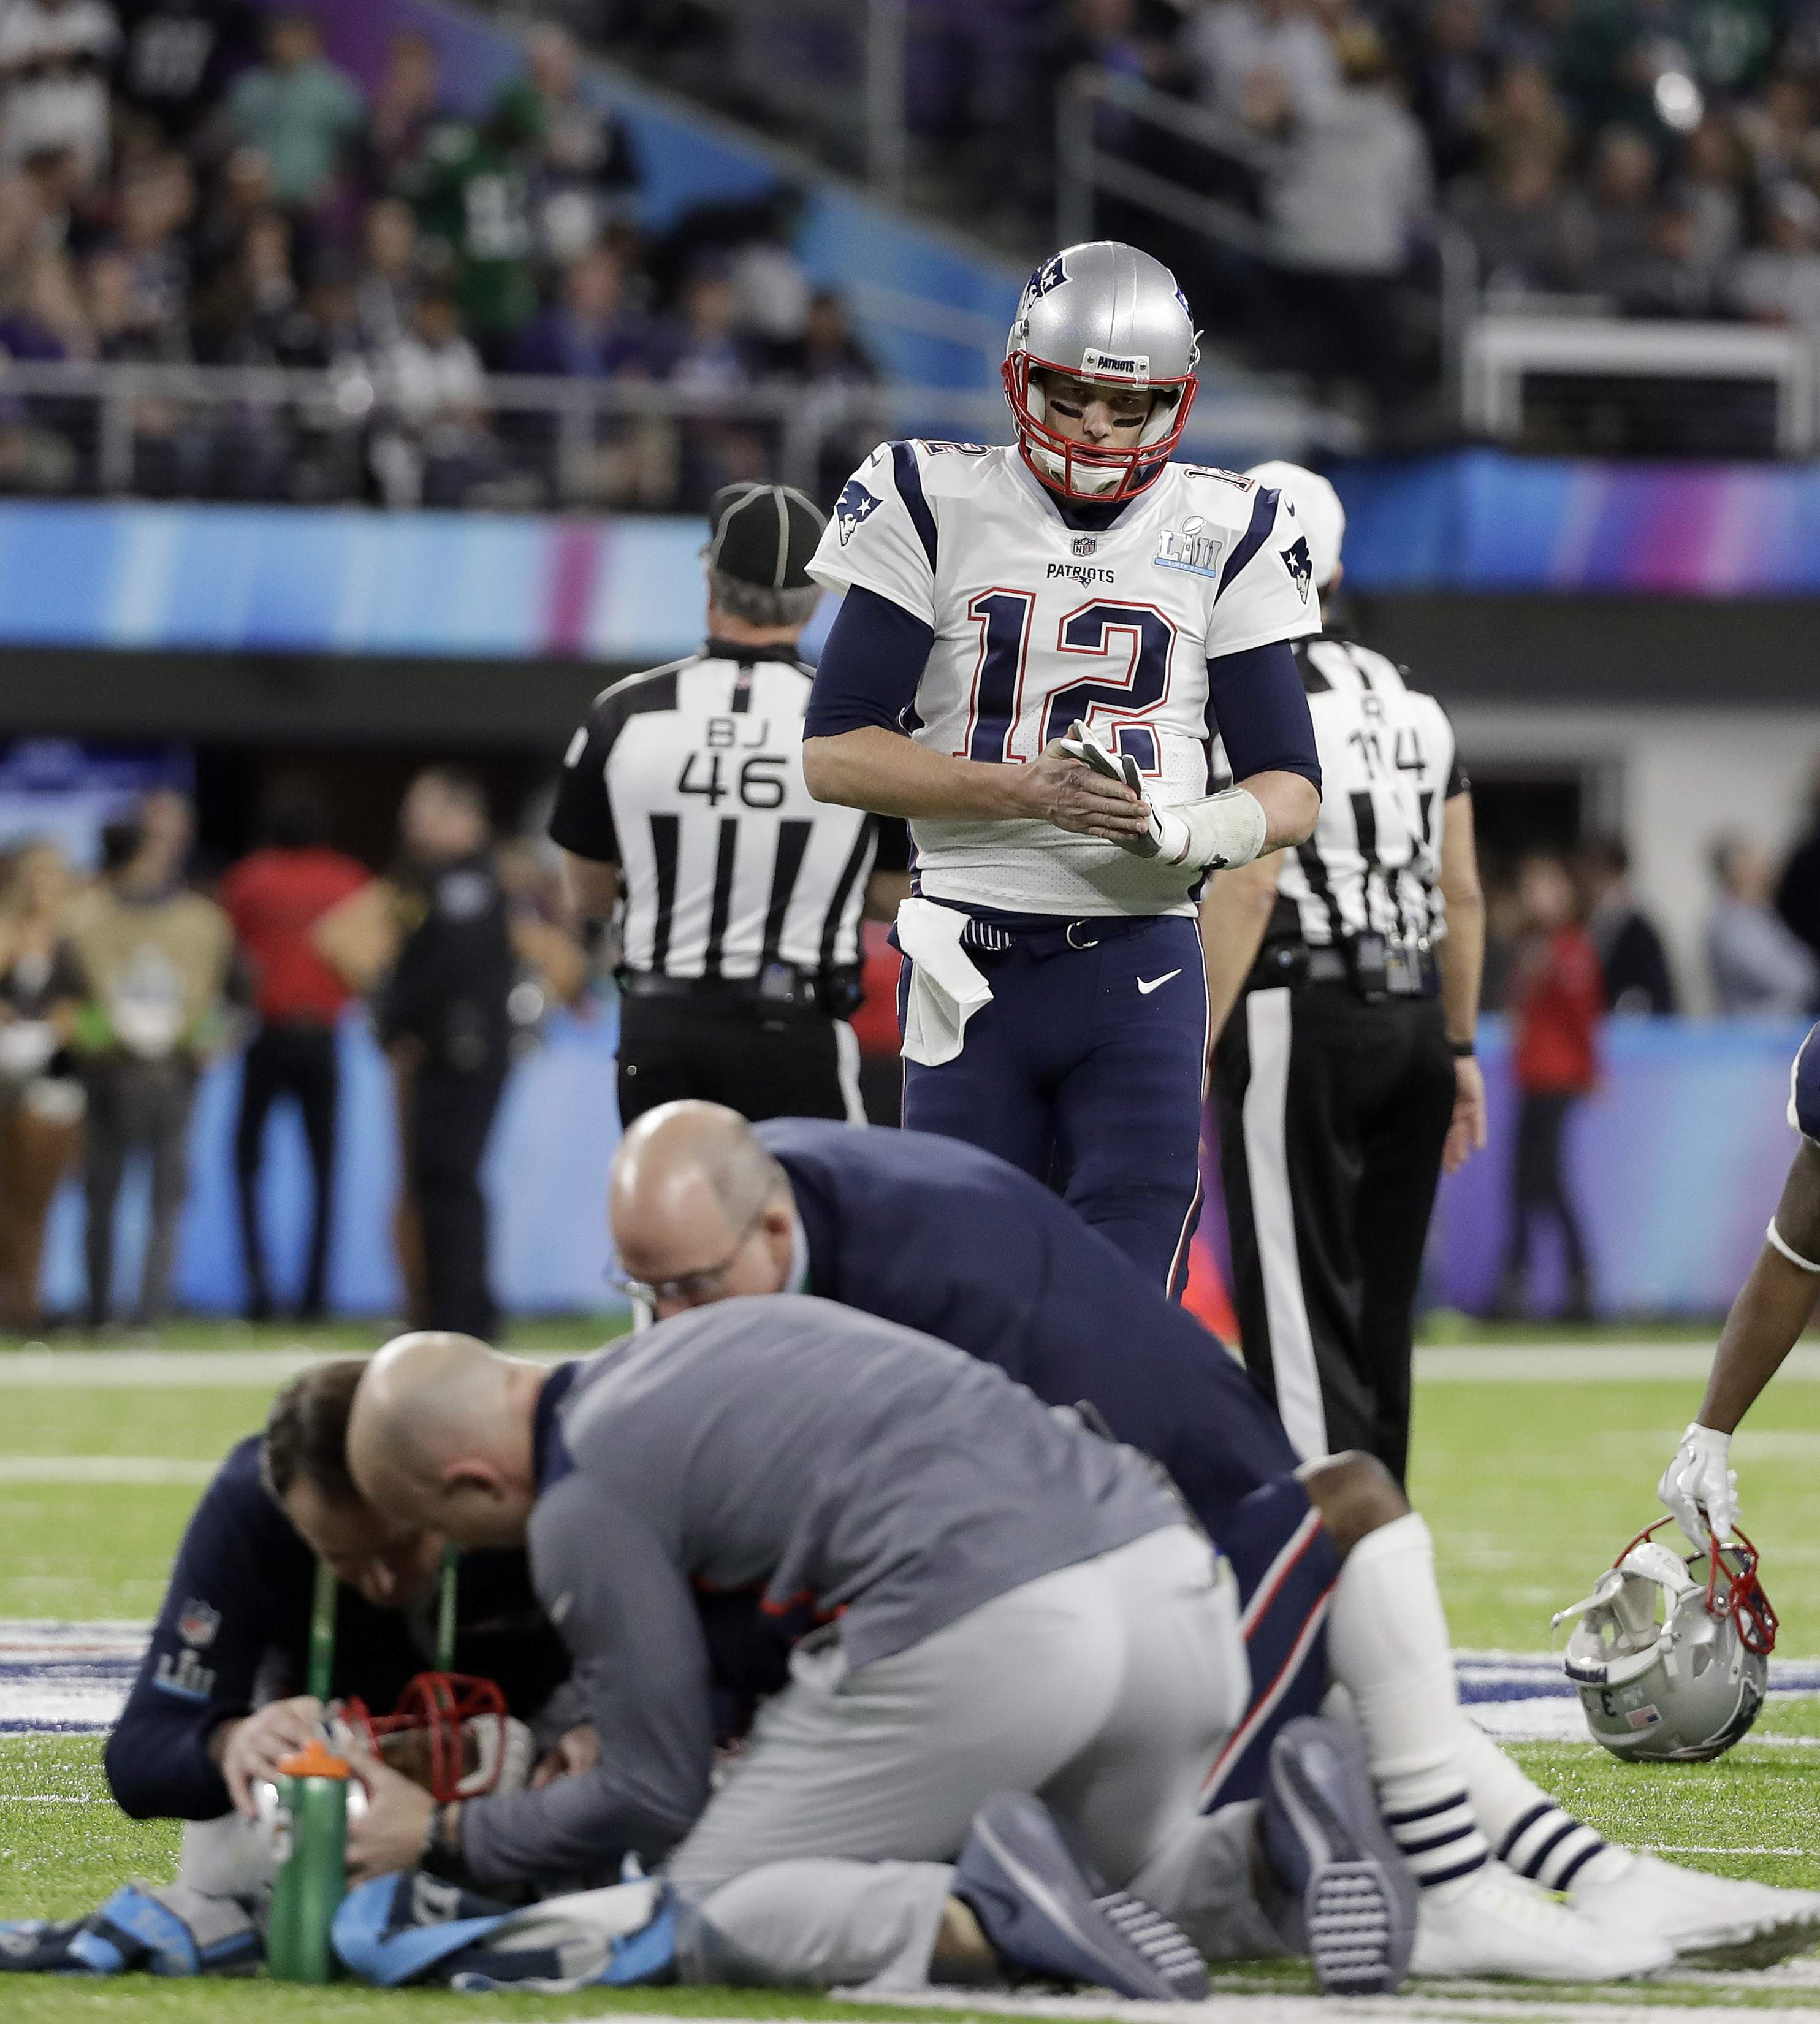 New England Patriots quarterback Tom Brady (12) looks as Brandin Cooks, bottom, is tended to after being hit during the first half of the NFL Super Bowl 52 football game against the Philadelphia Eagles Sunday, Feb. 4, 2018, in Minneapolis. (AP Photo/Mark Humphrey)